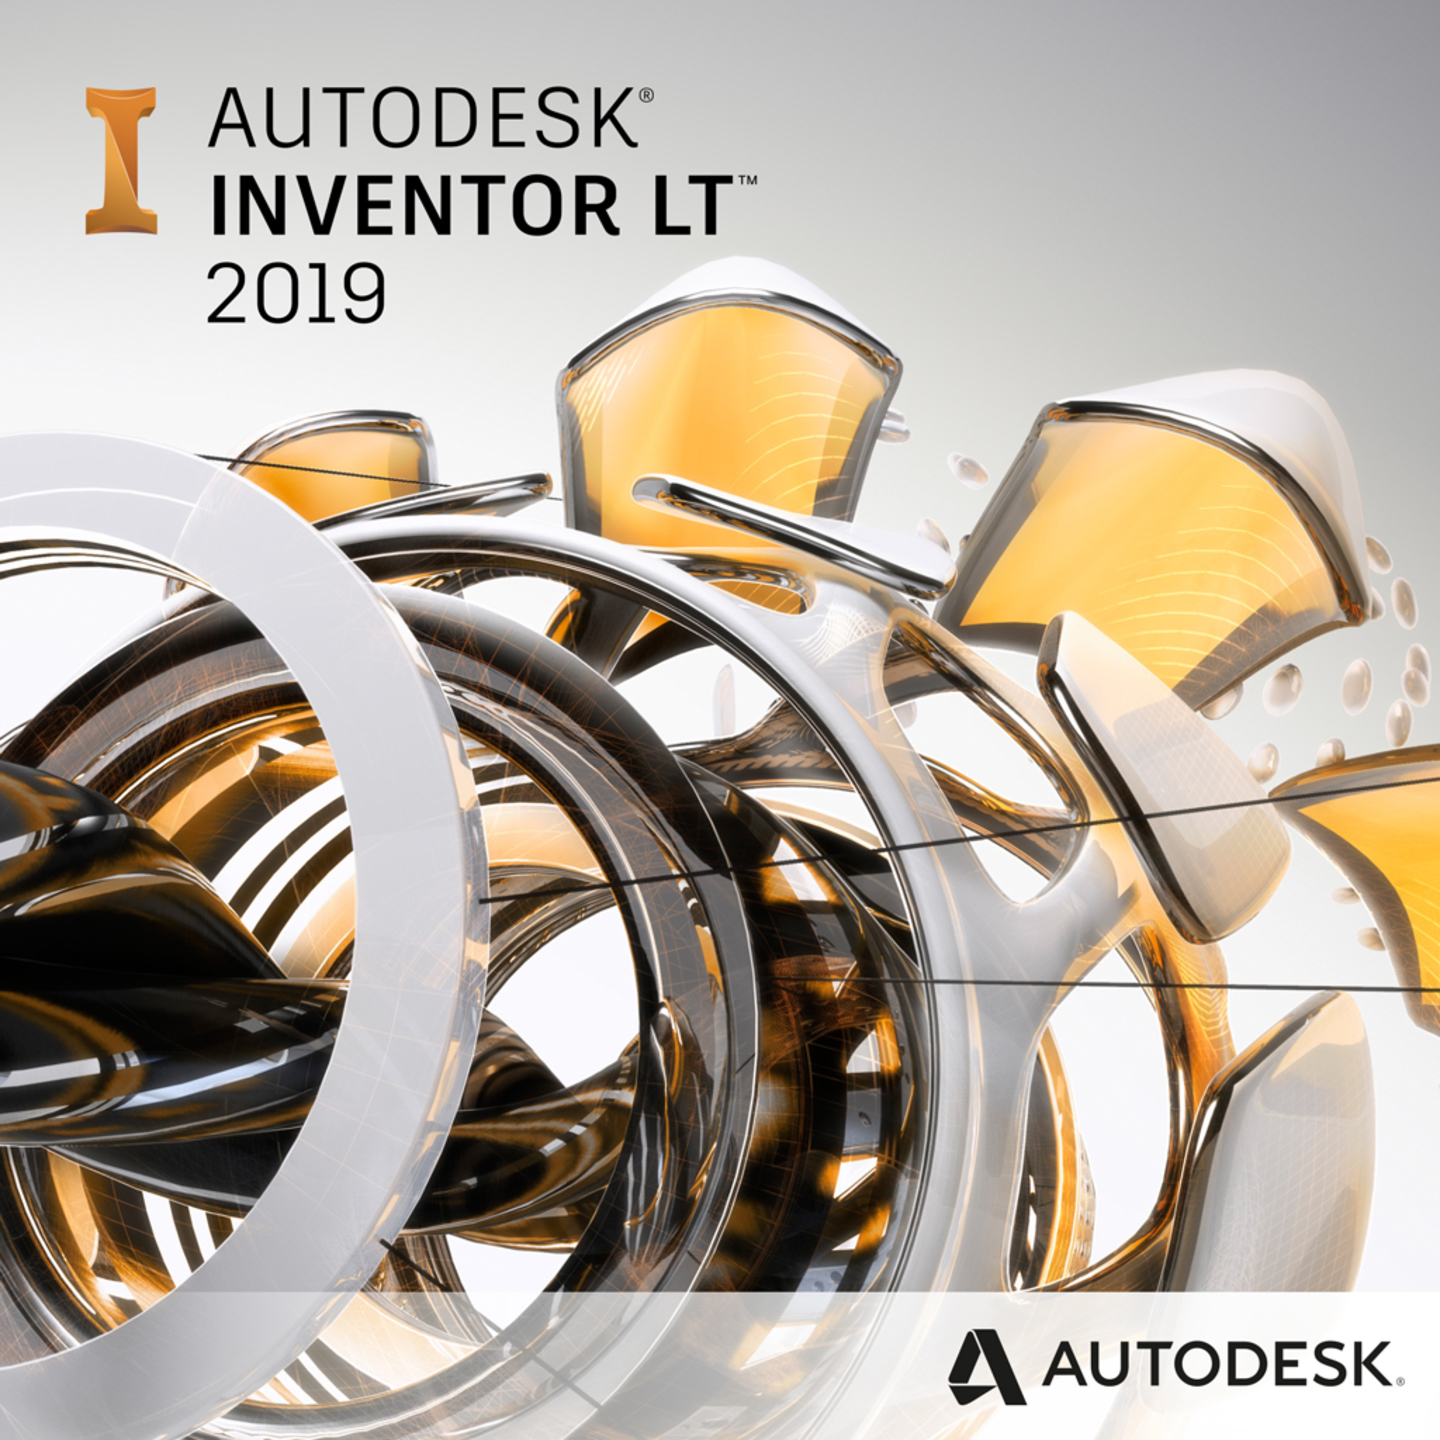 Autodesk Autocad Inventor LT Suite 2019 (1-Year Subscription)